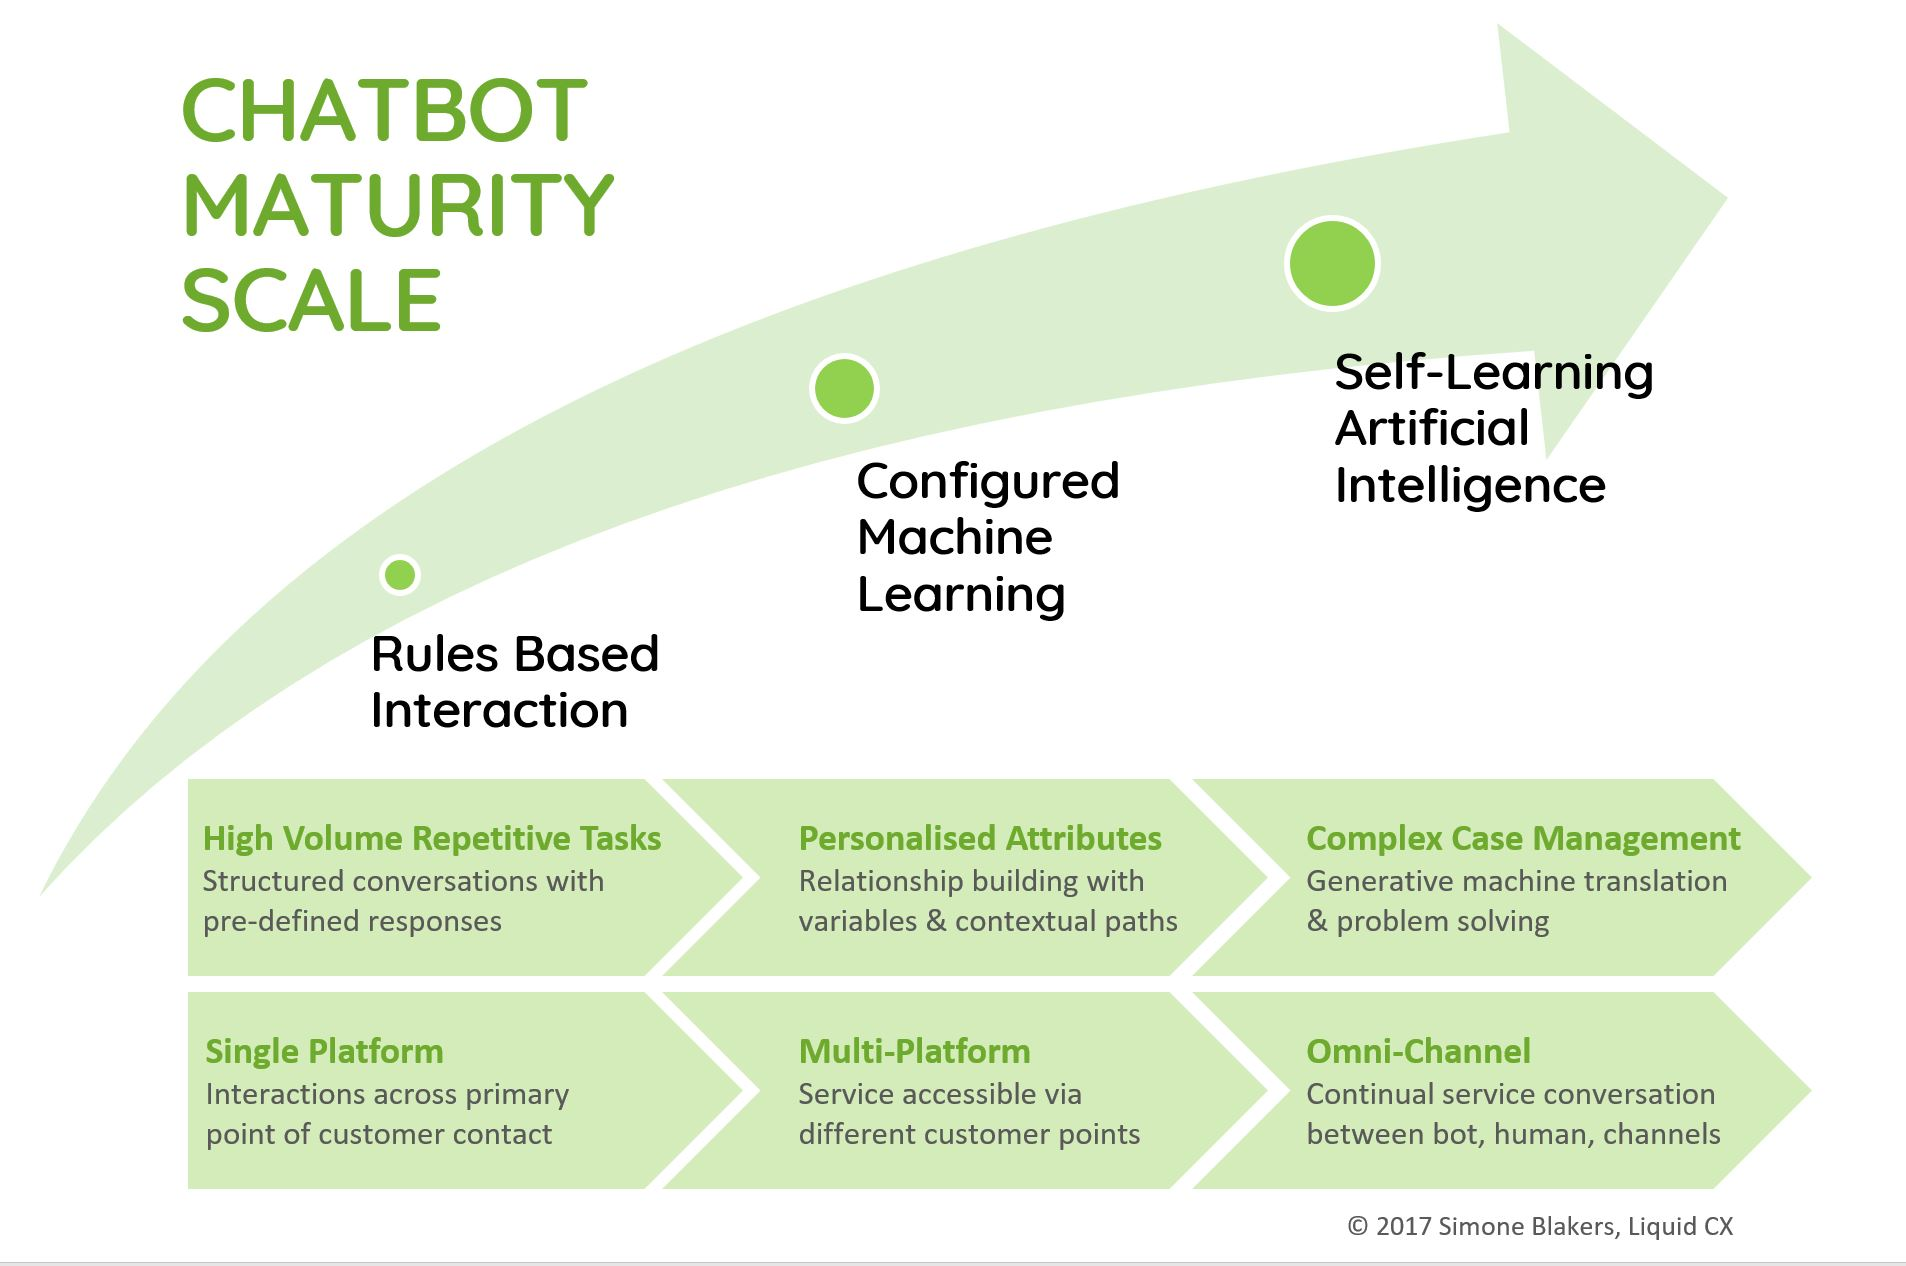 Chatbot Maturity Model Scale